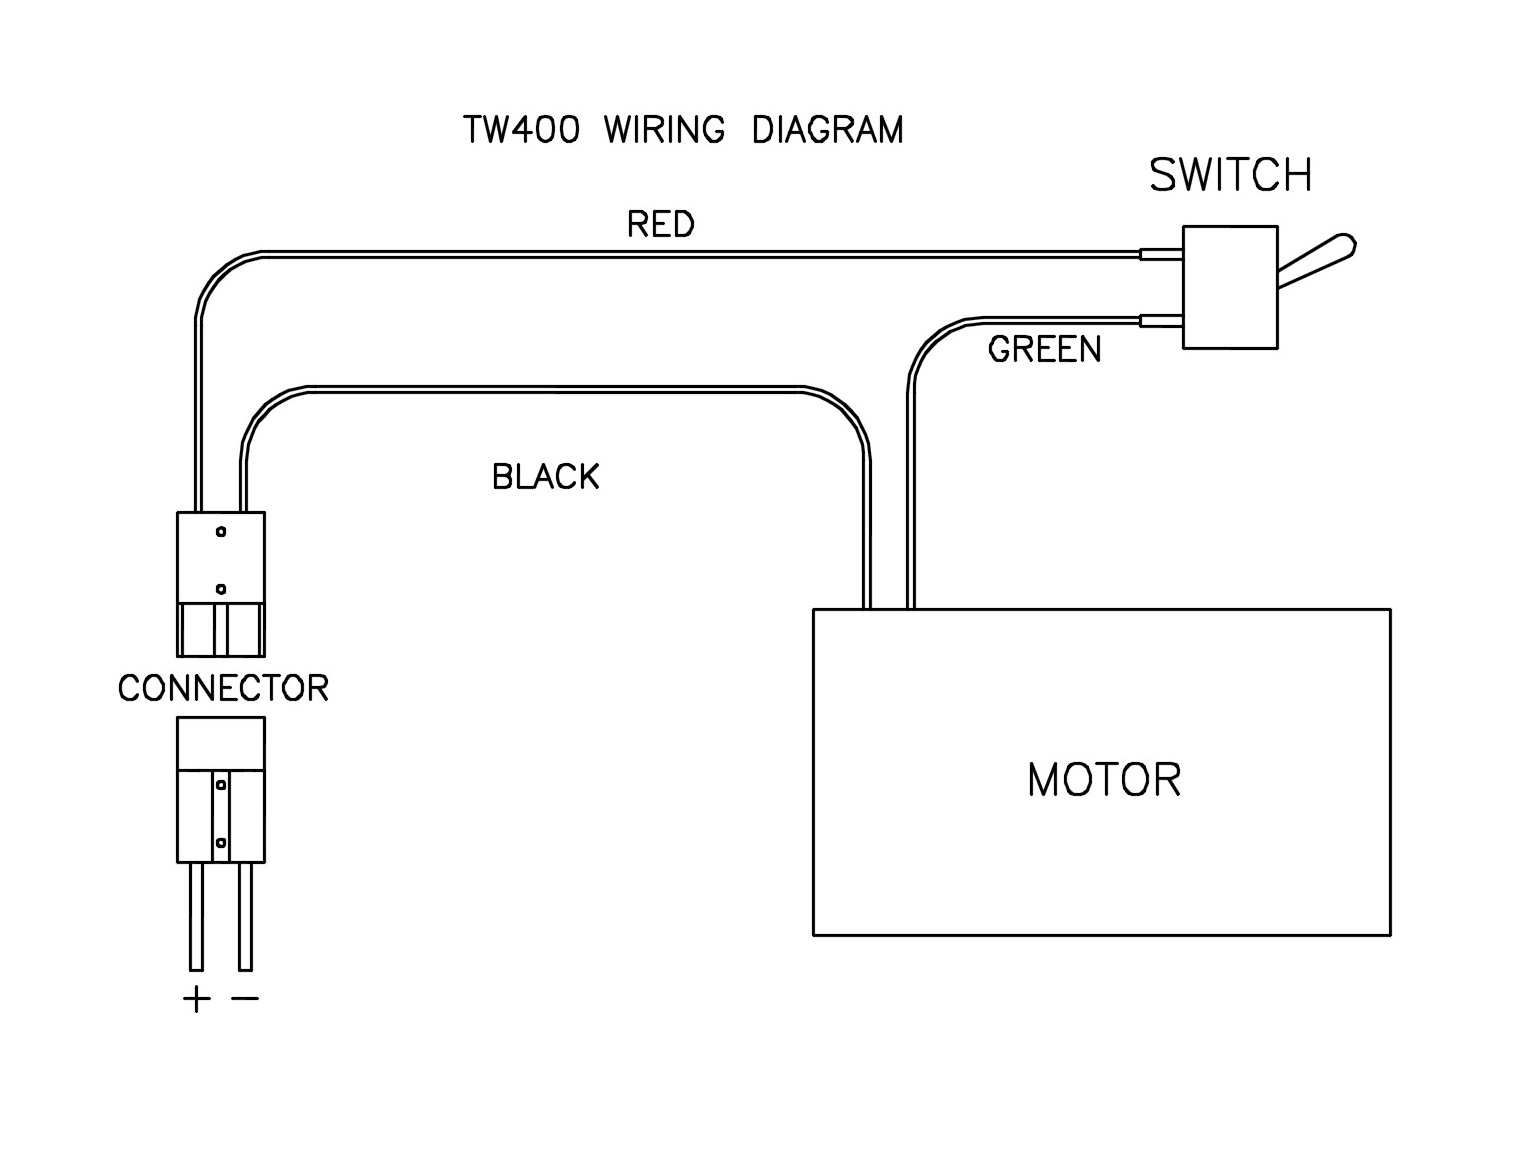 hight resolution of  be sure the positive harness wire is connected to the positive battery terminal and that the rest of the wiring is exactly as shown in the diagram